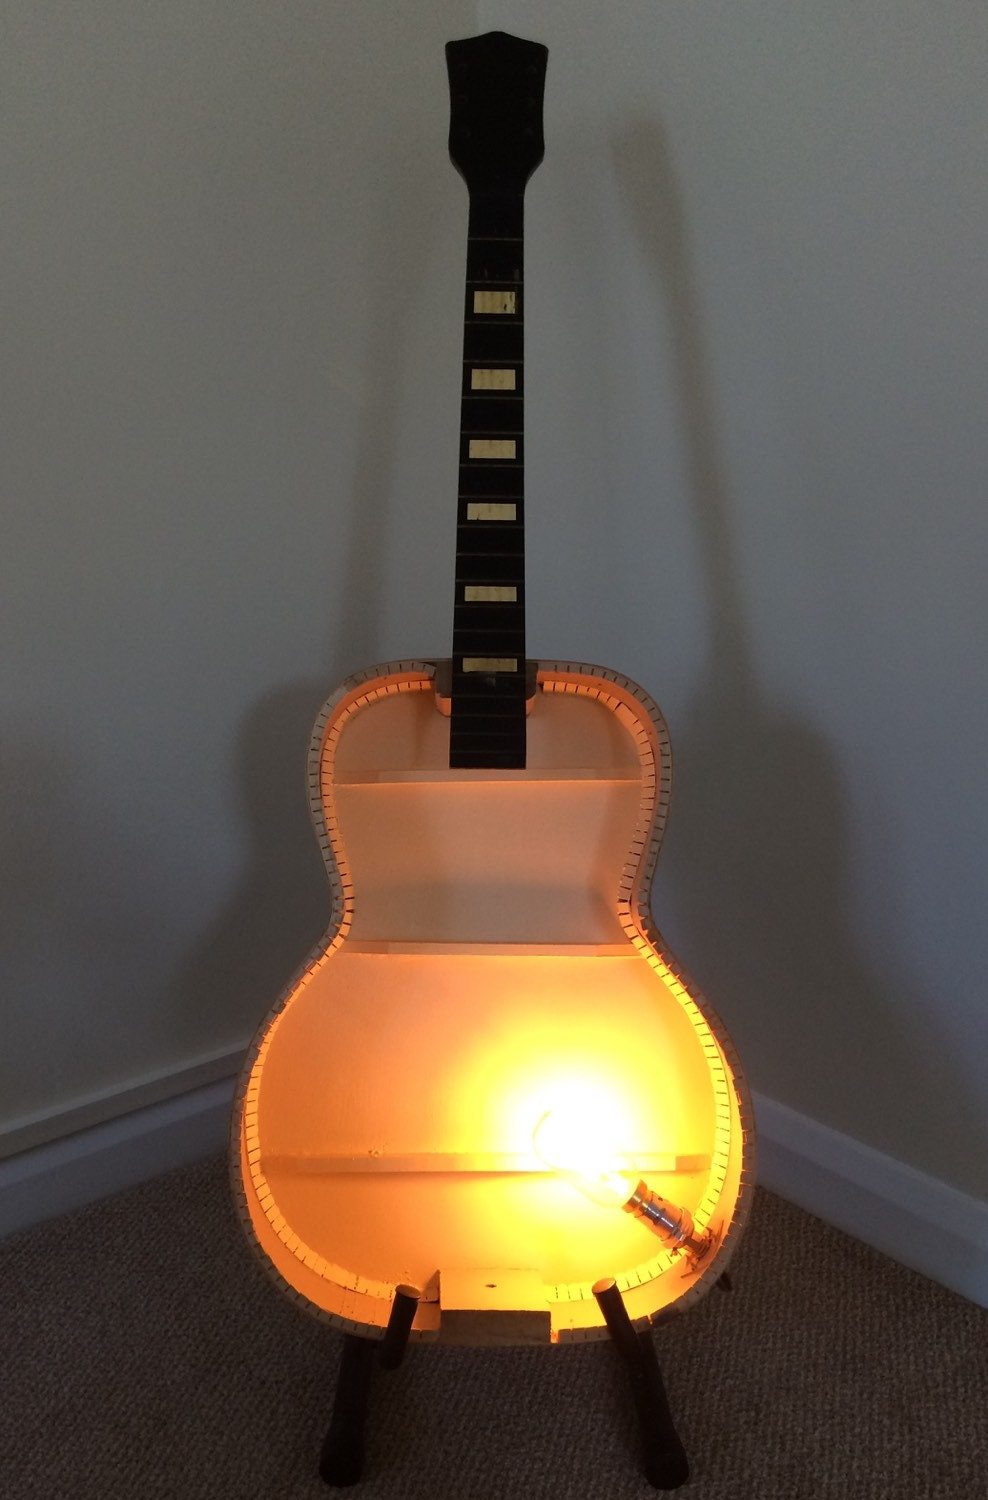 Upcycled Acoustic Guitar Floor Lamp Light With Industrial